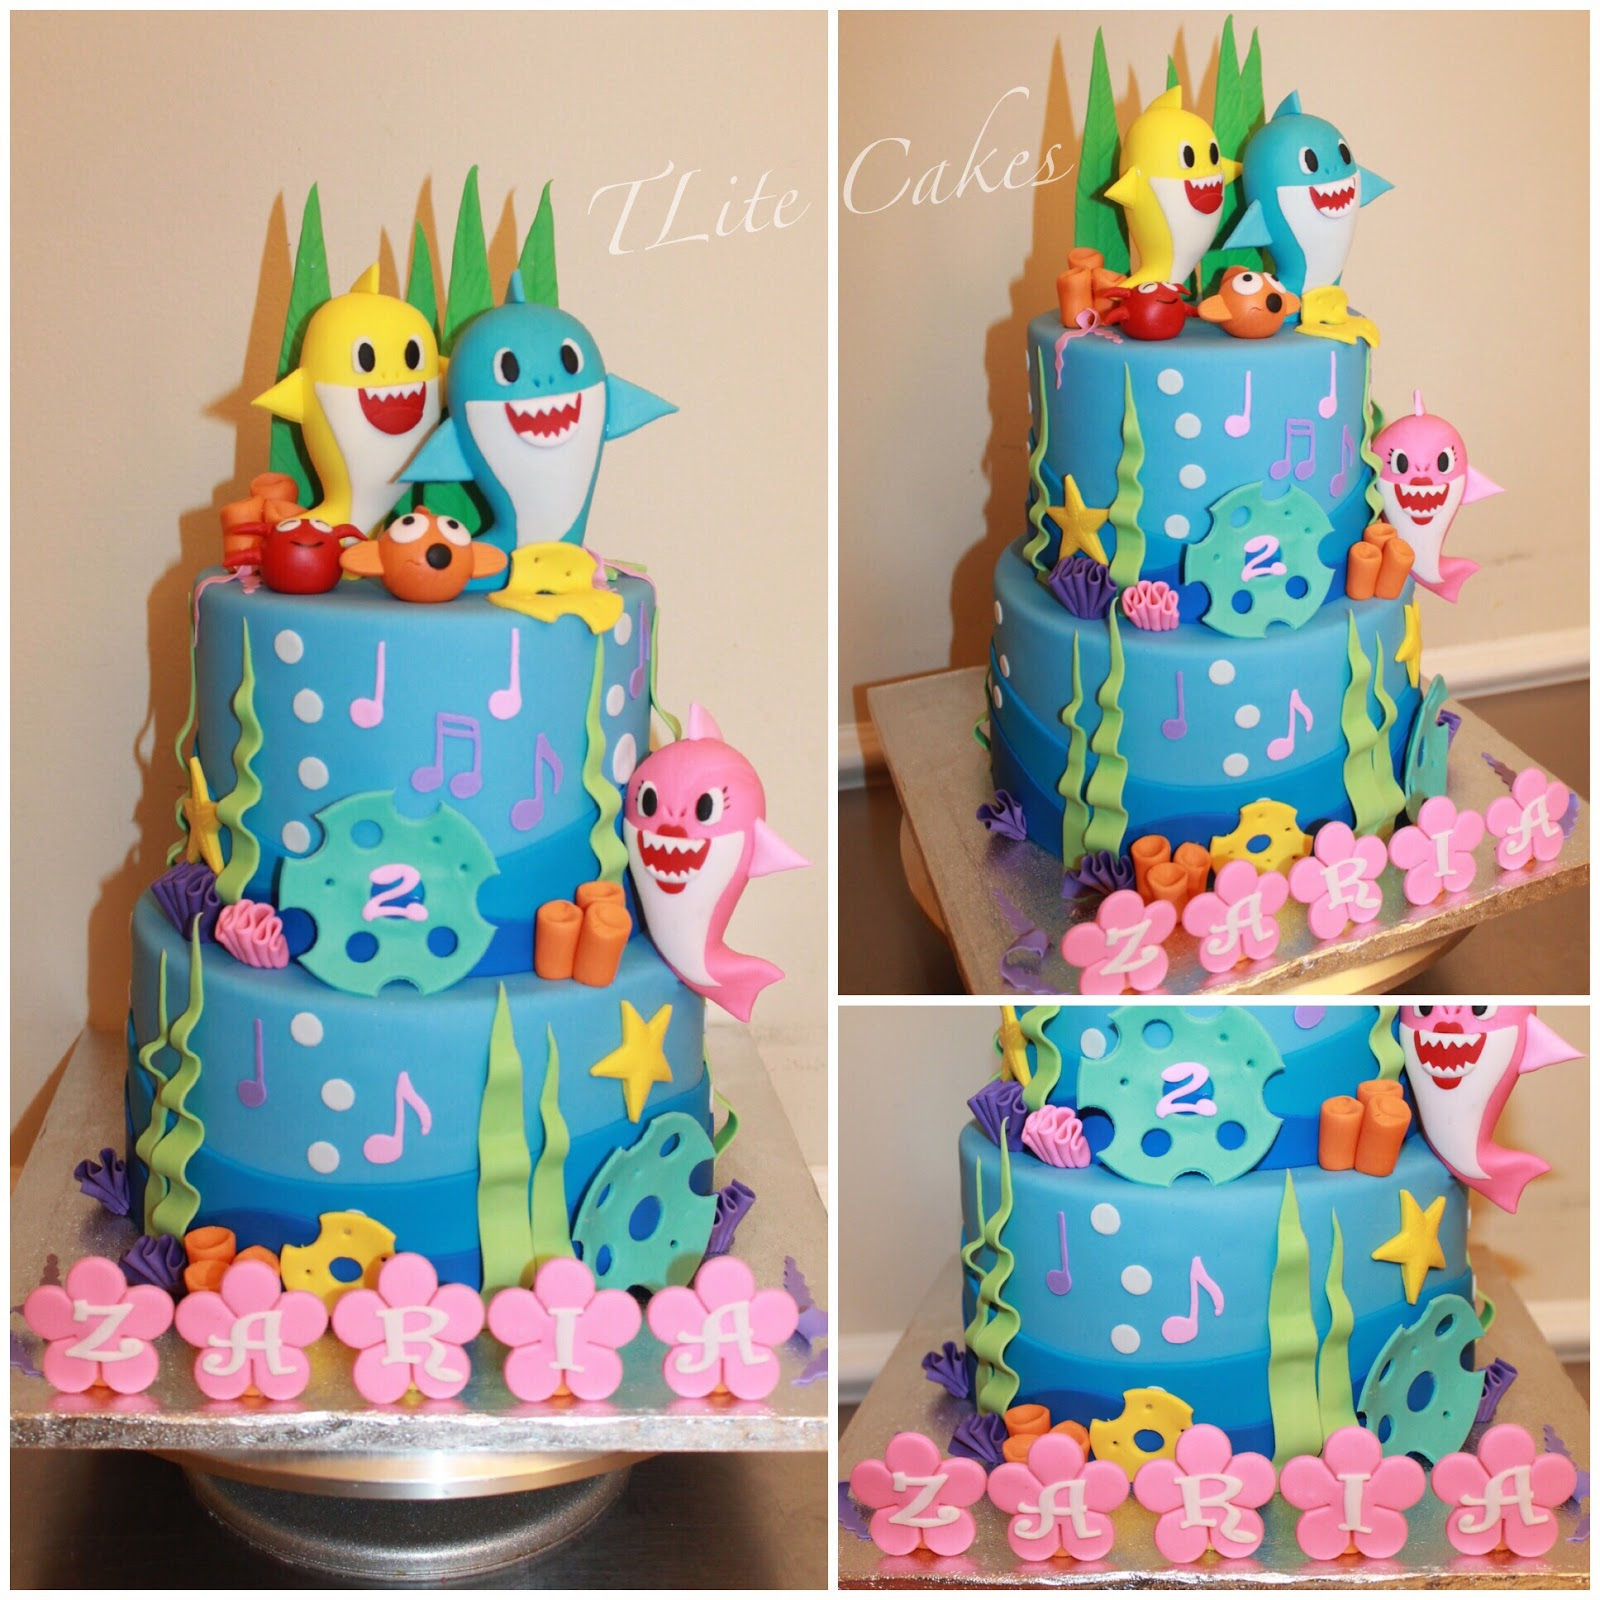 Incredible Tlite Cakes And Planning Baby Shark 2Nd Birthday Funny Birthday Cards Online Aboleapandamsfinfo